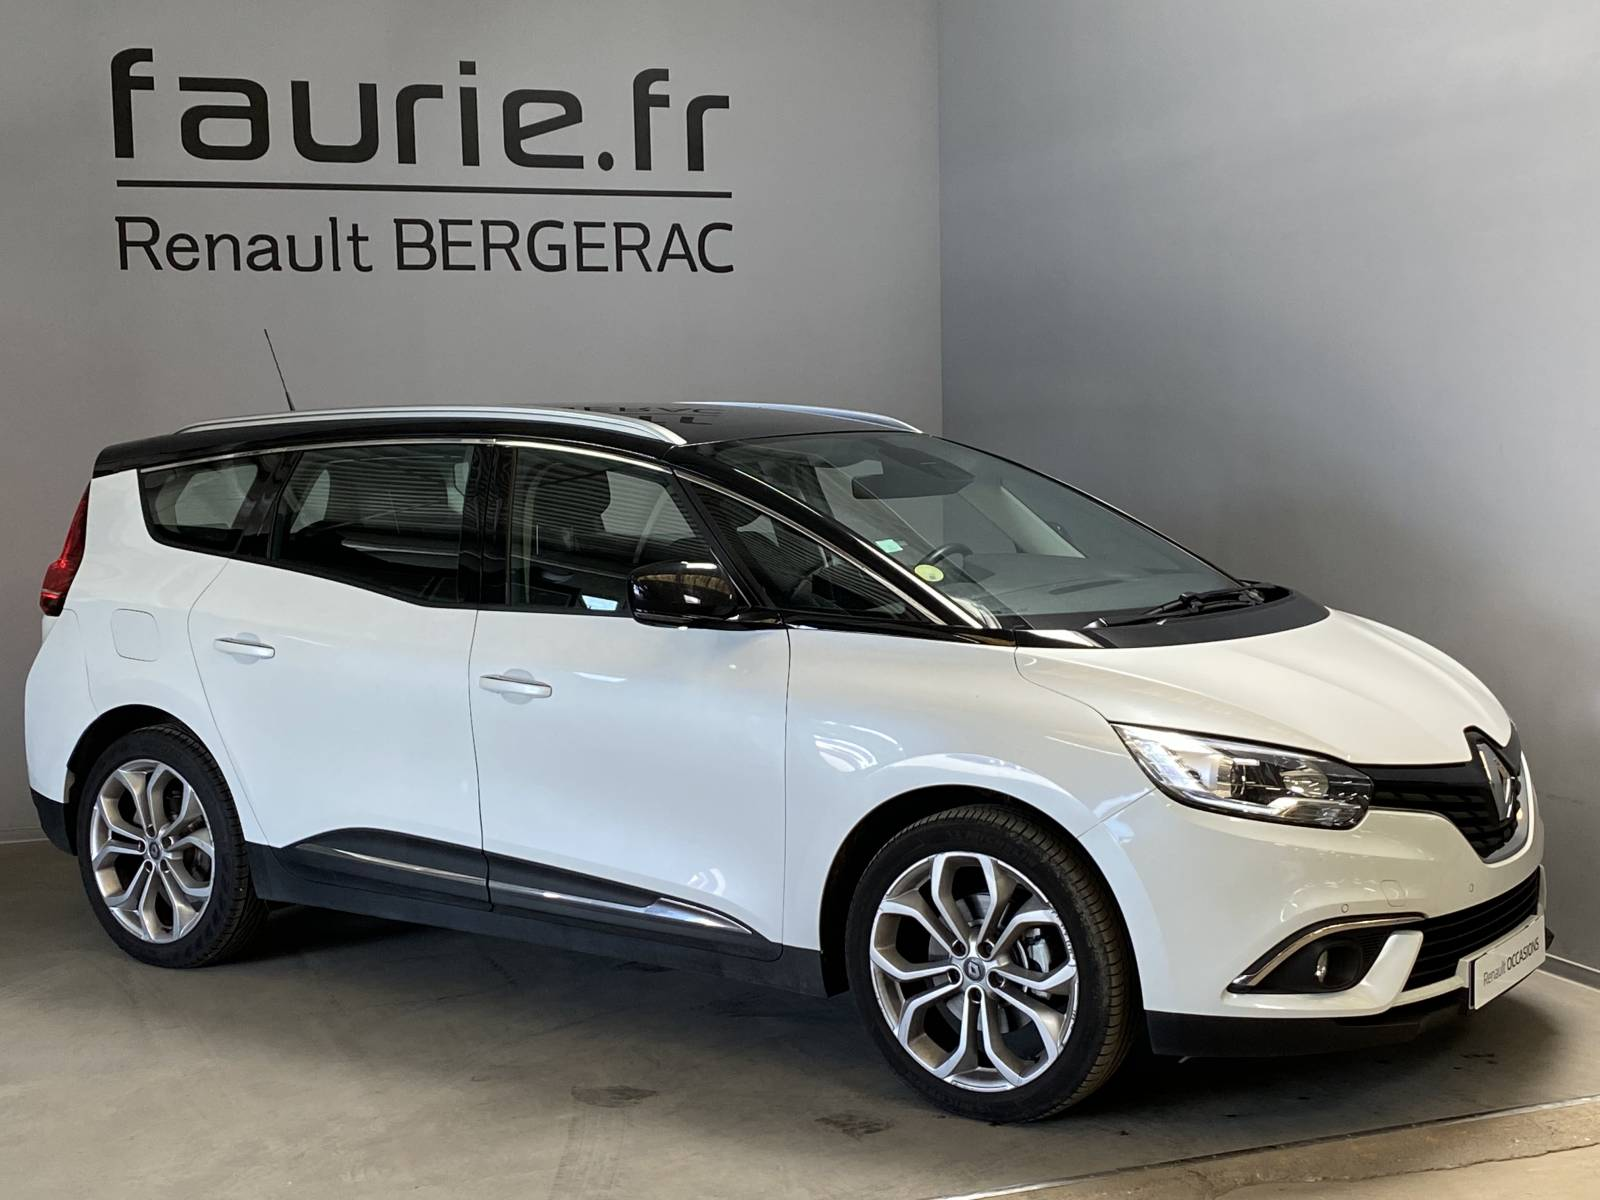 RENAULT Grand Scénic dCi 110 Energy EDC - véhicule d'occasion - Site Internet Faurie - Renault - Faurie Auto Bergerac - 24100 - Bergerac - 3